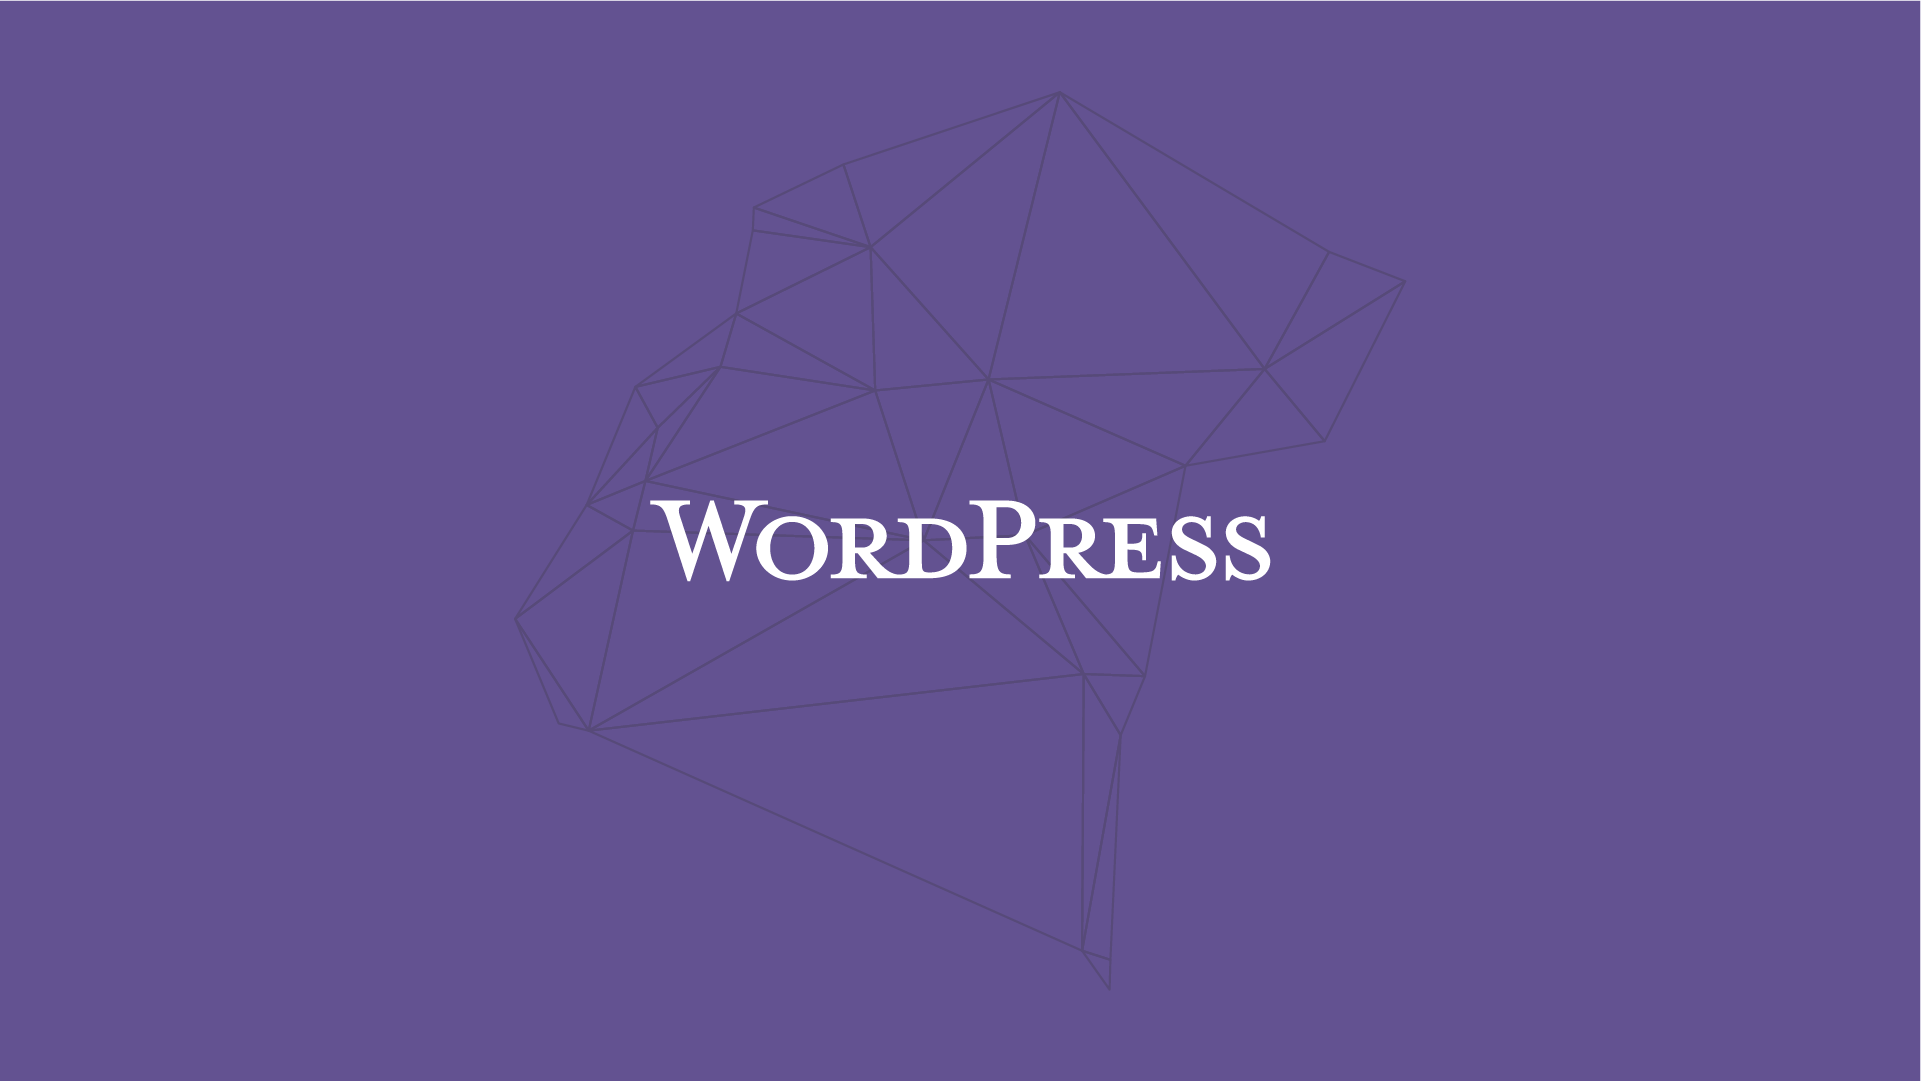 5 Benefits of using WordPress for your blog [infographic]